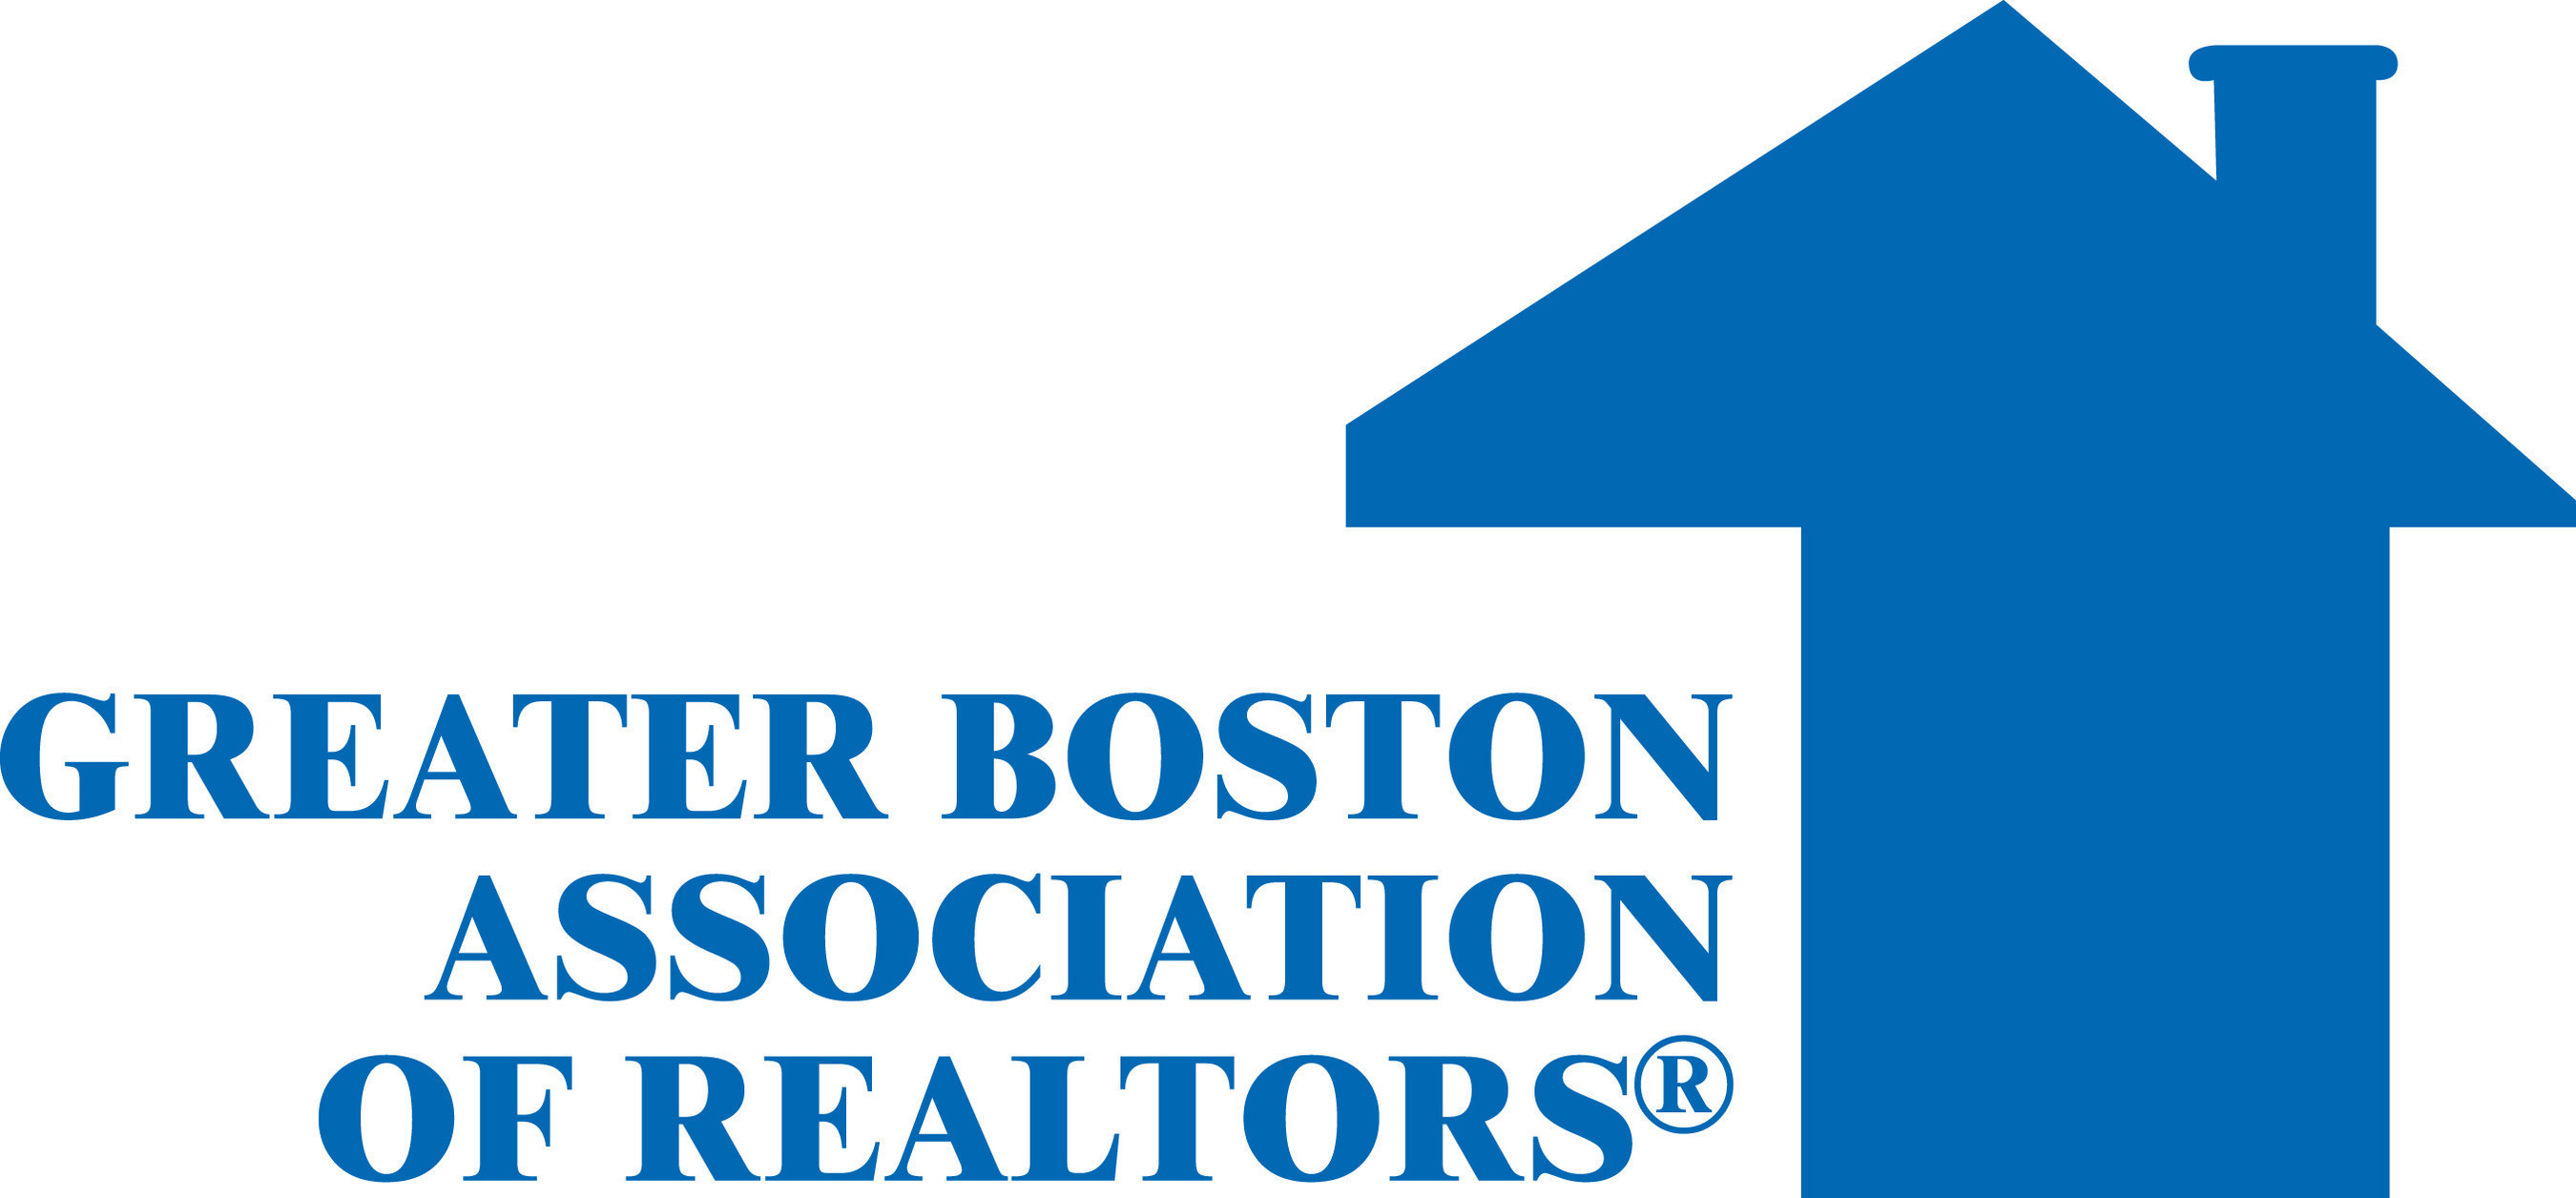 Home Sales, Prices Remain High Despite Low Inventory In Greater Boston